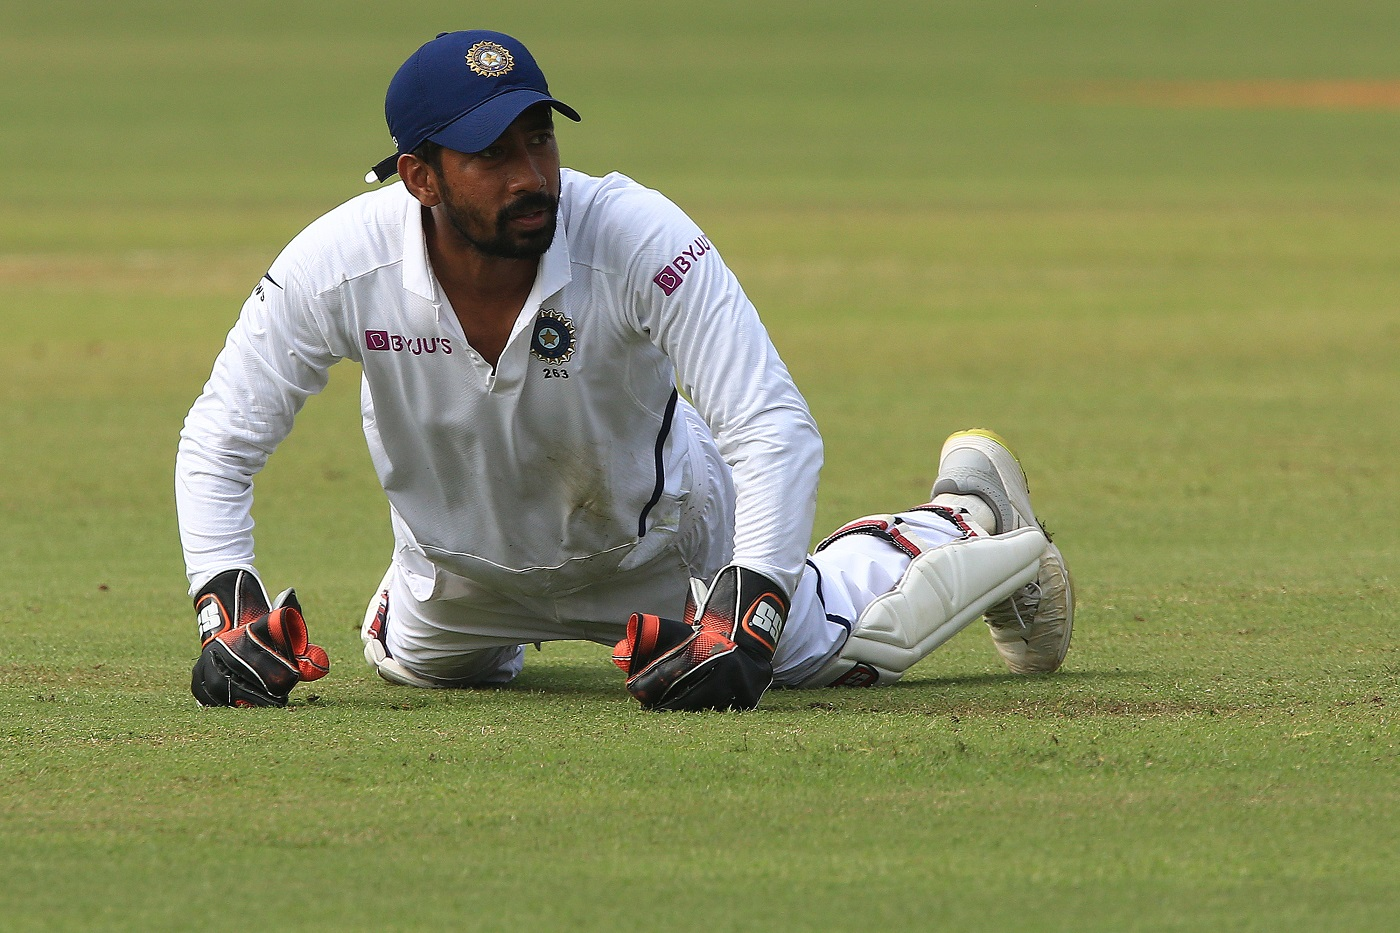 Wriddhiman Saha behind the stumps: acrobatic, safe, alert and able to fly - all at the same time